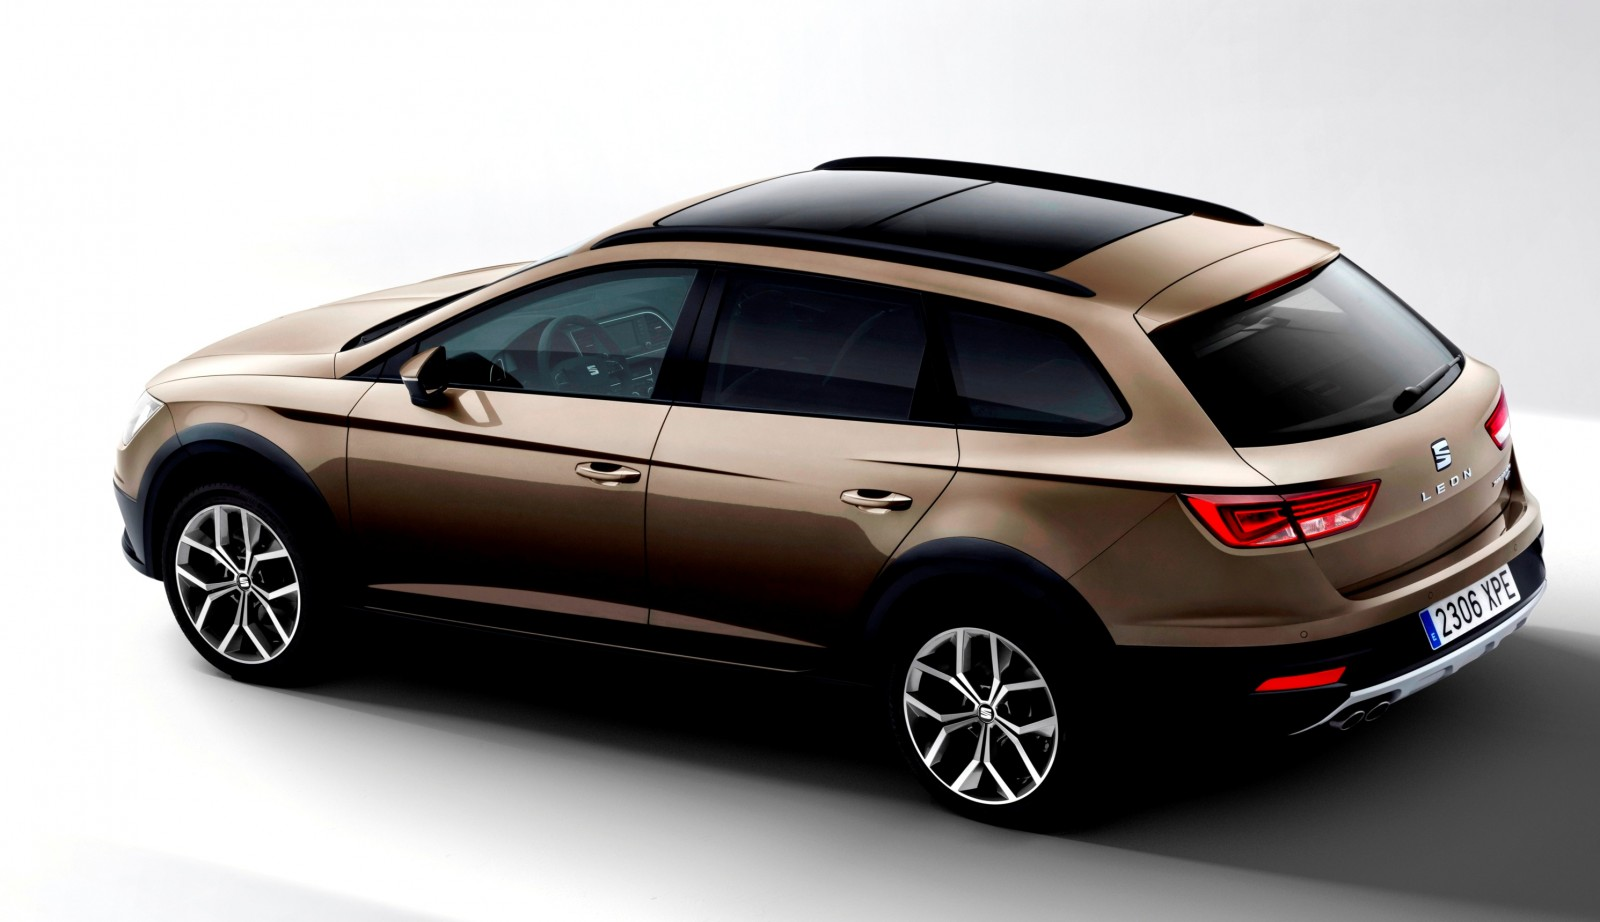 2015 seat leon x perience is gravel ready estate car coming to european dealers in november 5. Black Bedroom Furniture Sets. Home Design Ideas